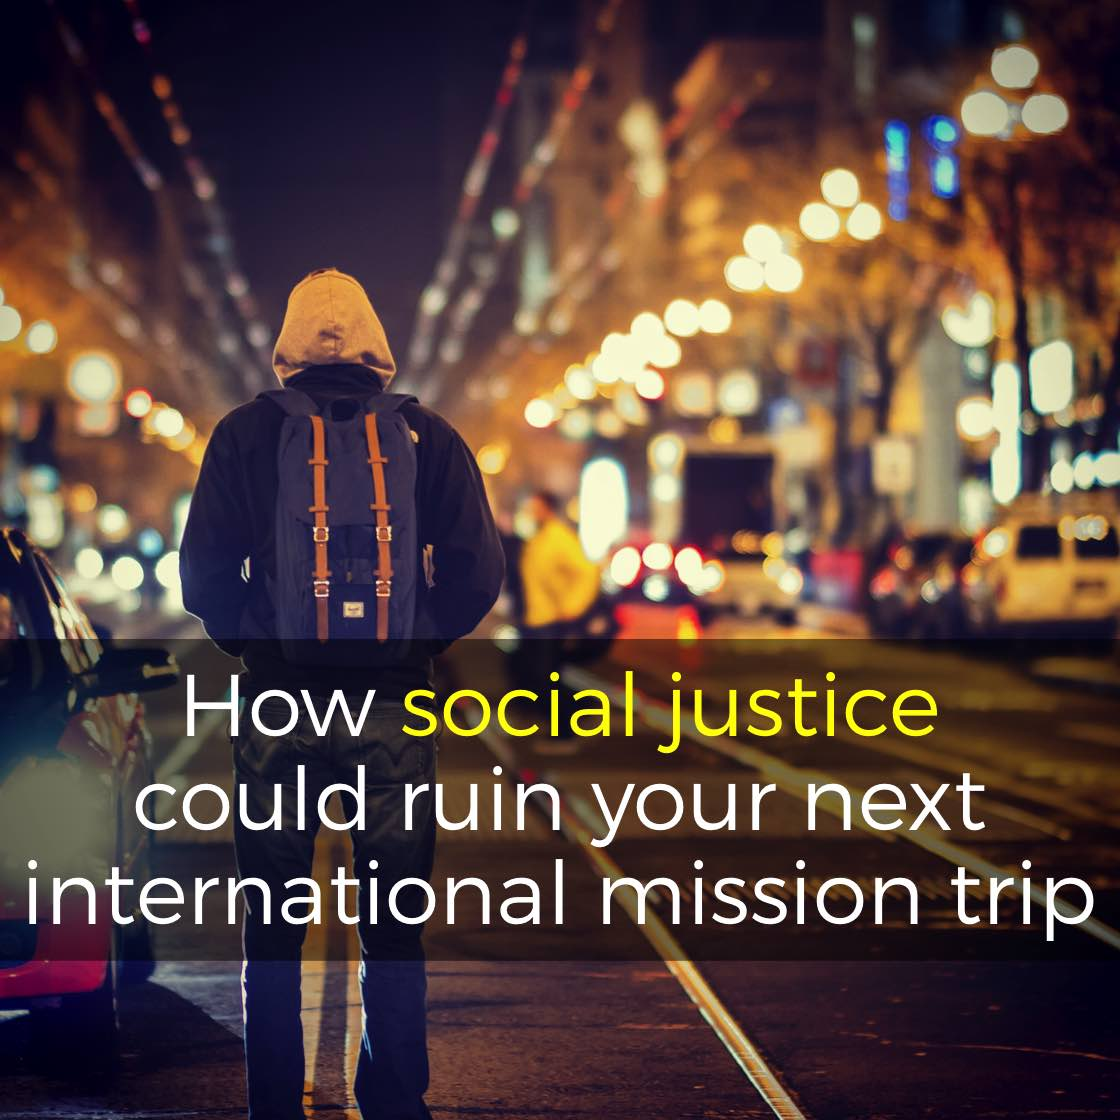 How social justice could ruin your next international mission trip